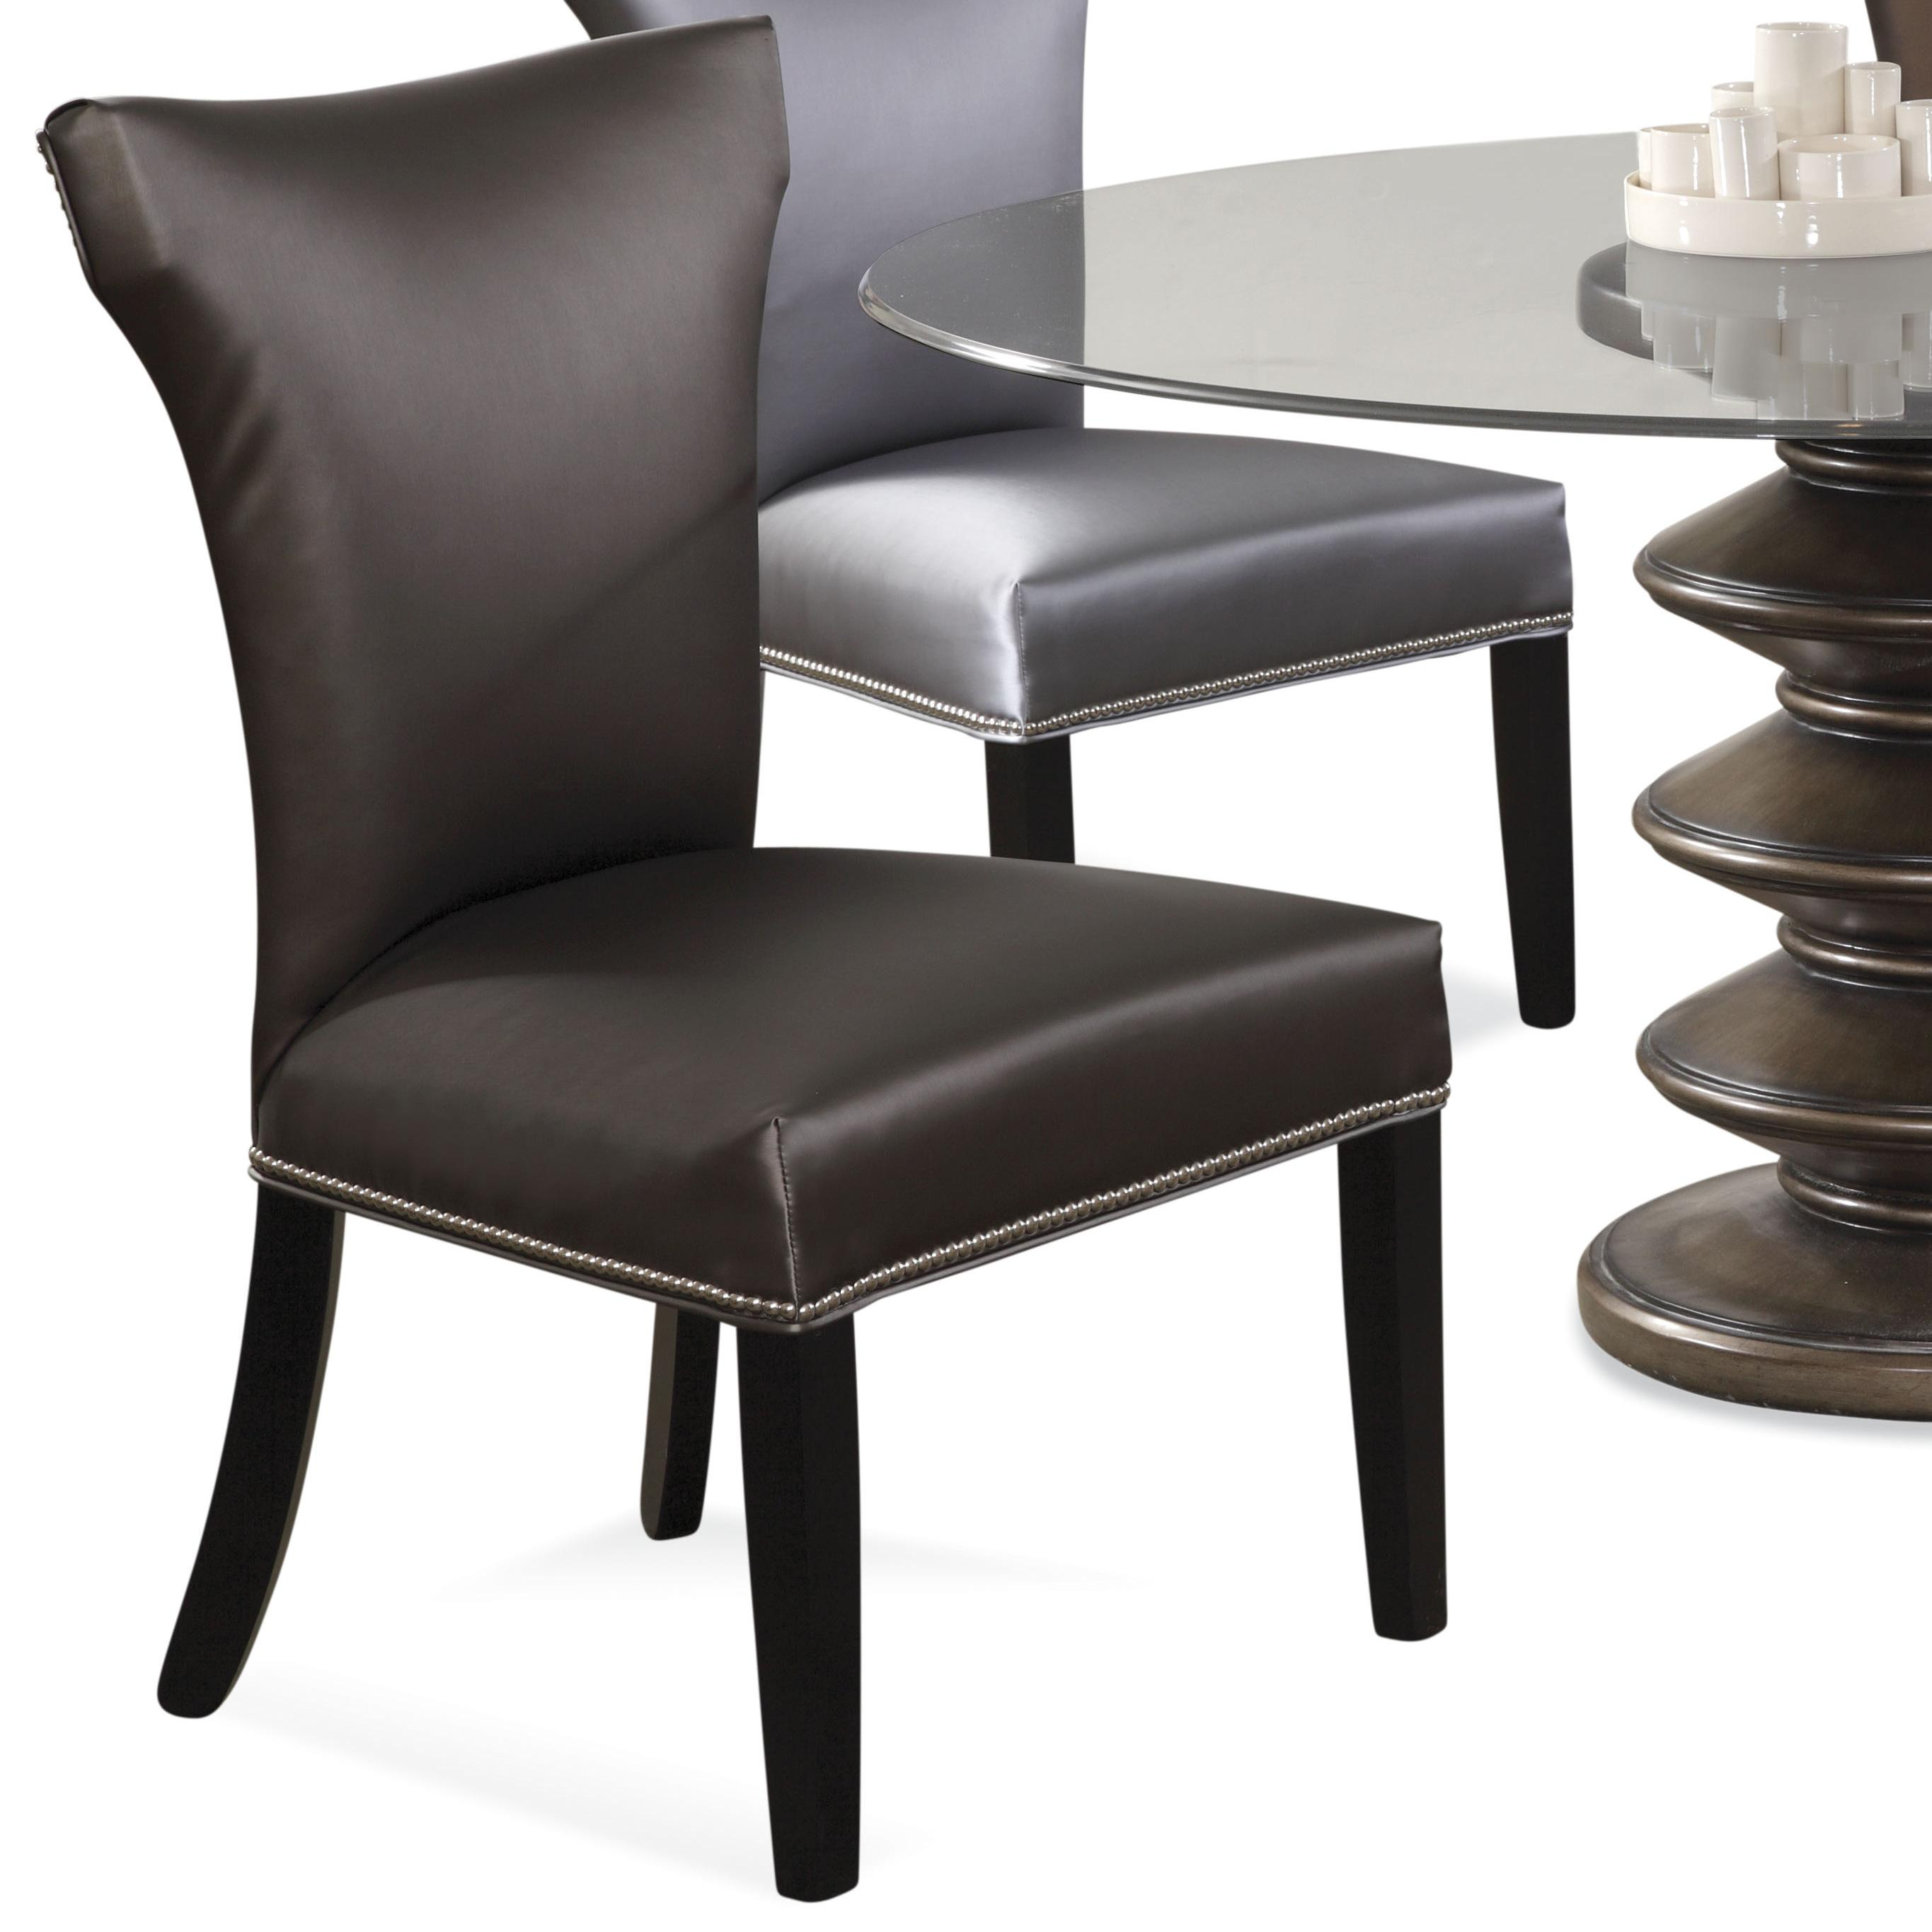 Parson Chair With Wooden Legs and Nailhead Trim by CMI